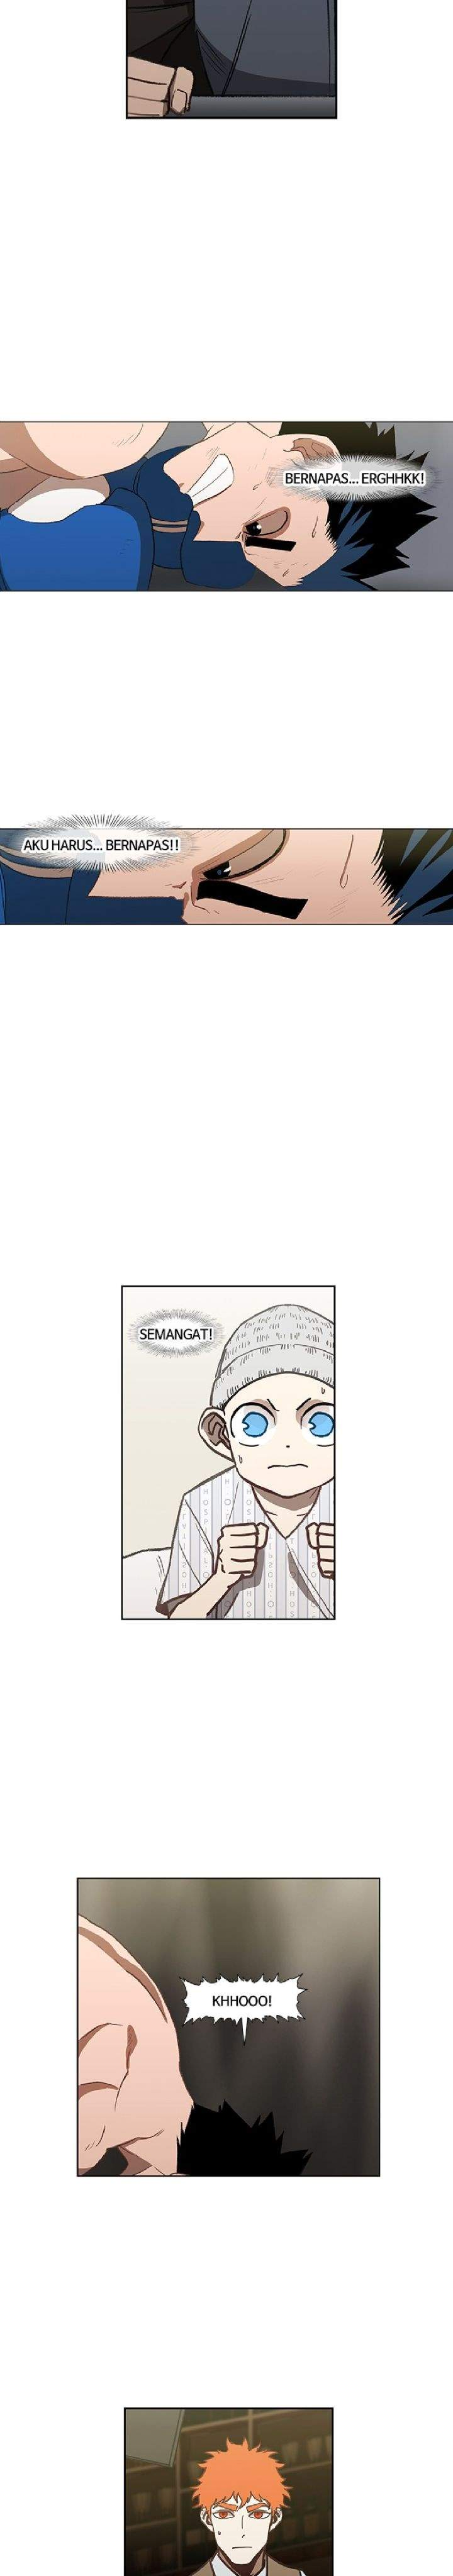 The Boxer Chapter 49